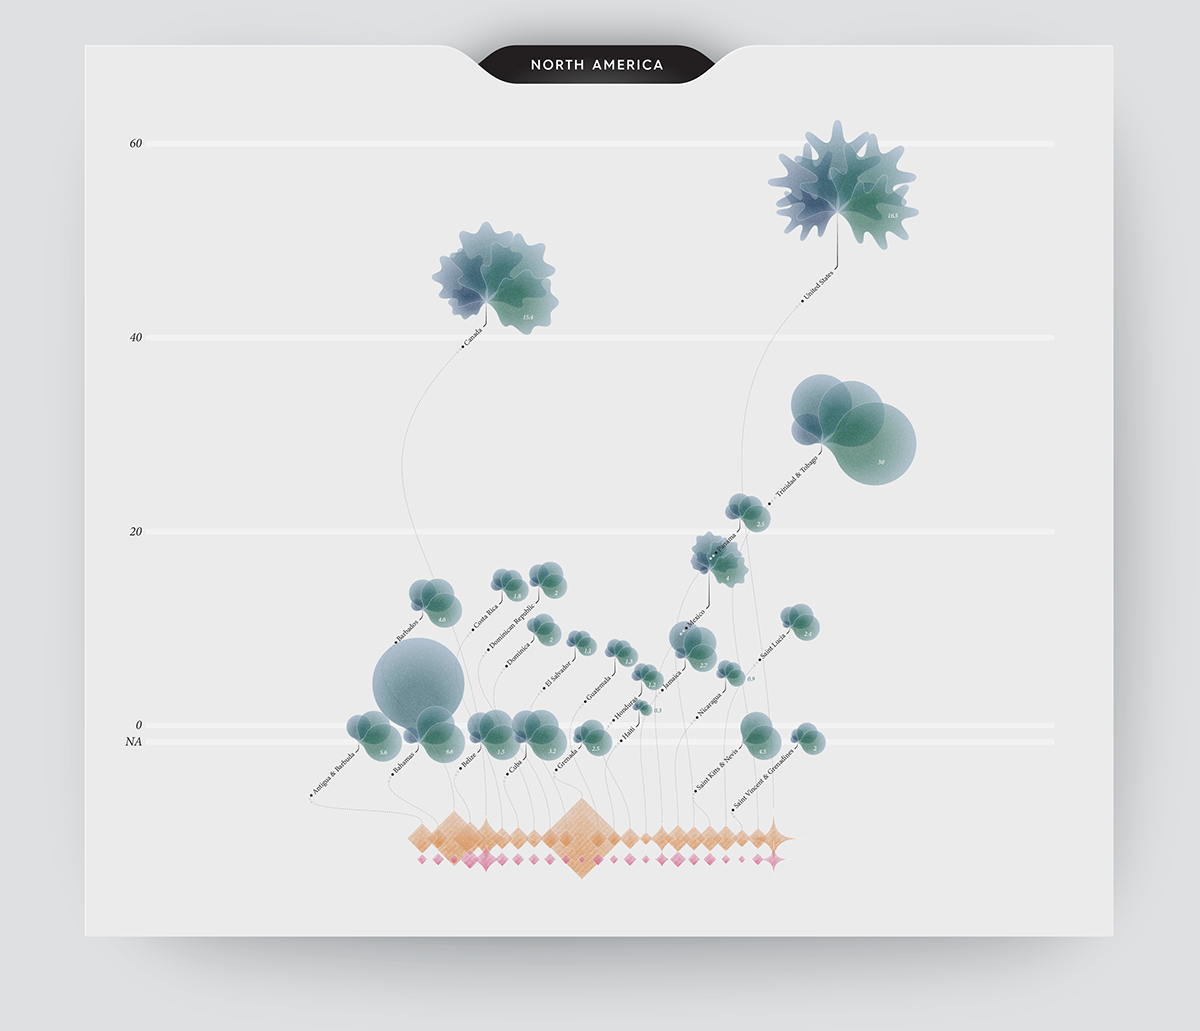 Infographic data visualization (or dataviz) on greenhouse gas emissions in North America